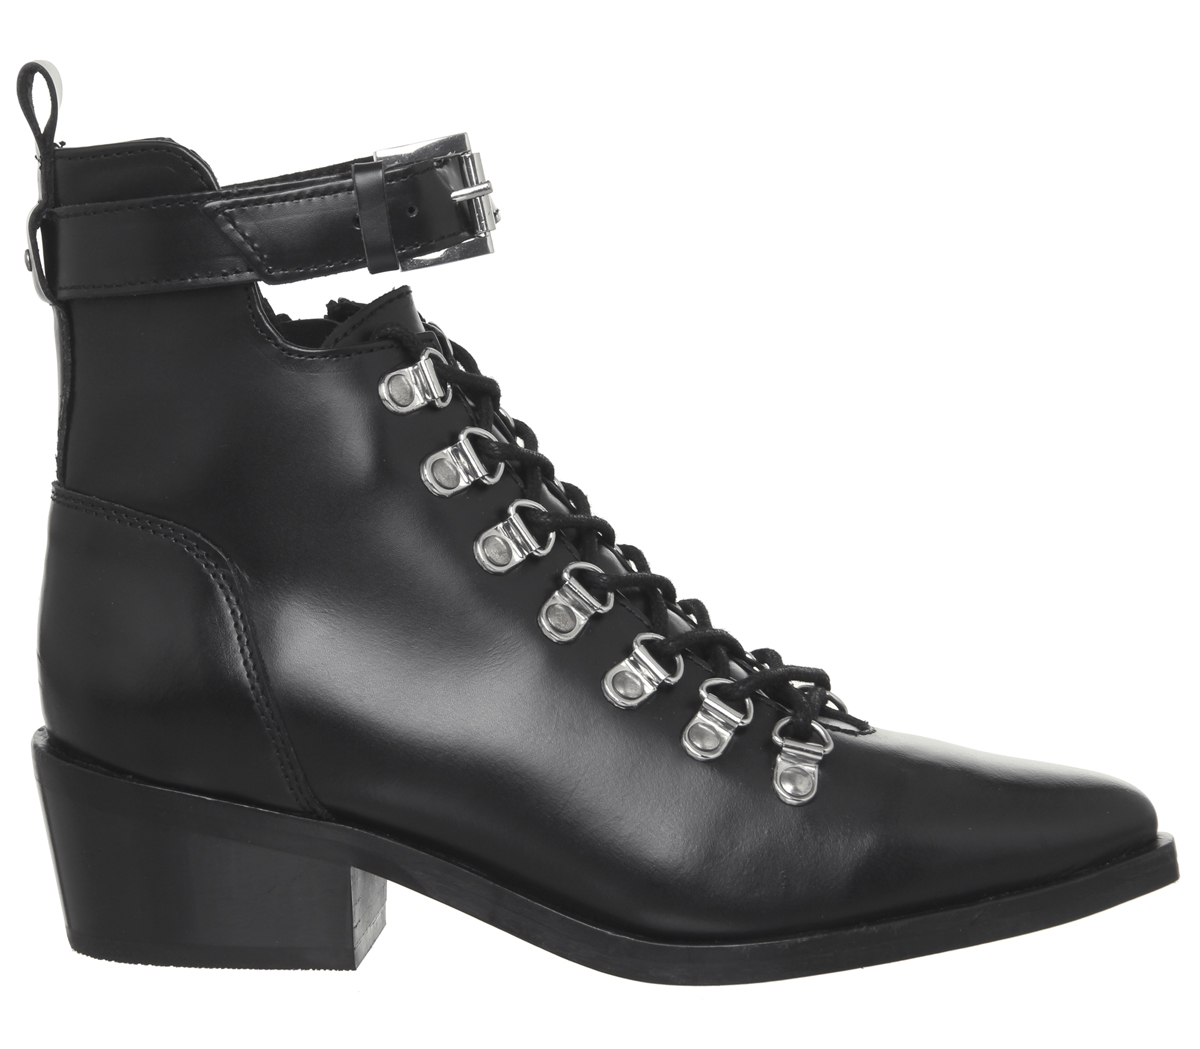 Womens-Office-Apocalypse-Lace-Detail-Point-Boots-Black-Leather-Boots thumbnail 5